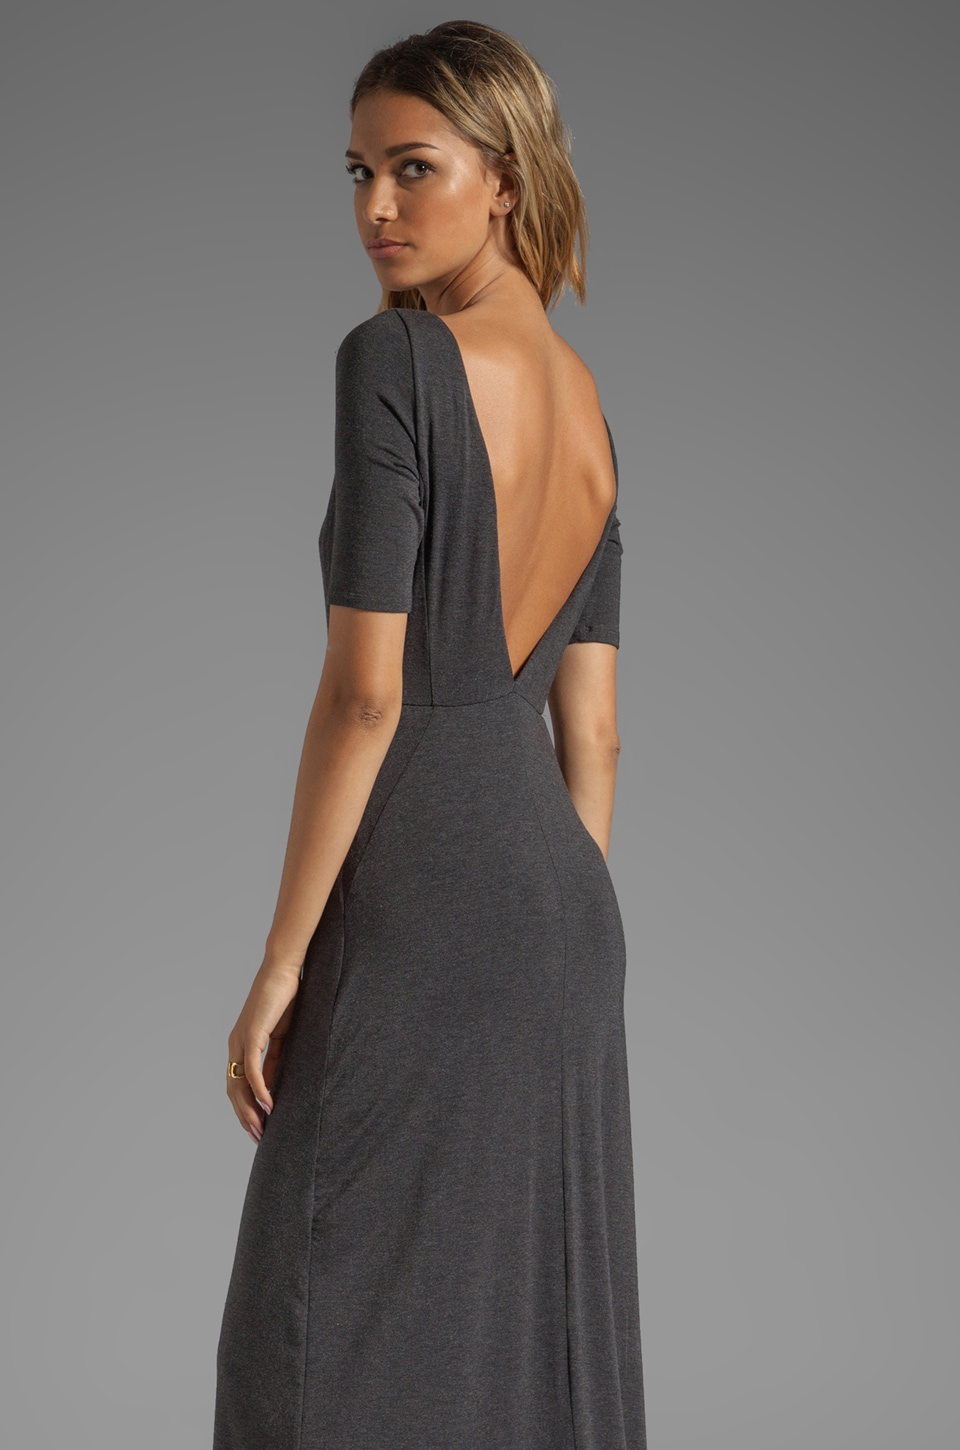 Heather V Back Maxi Dress in Heather Black